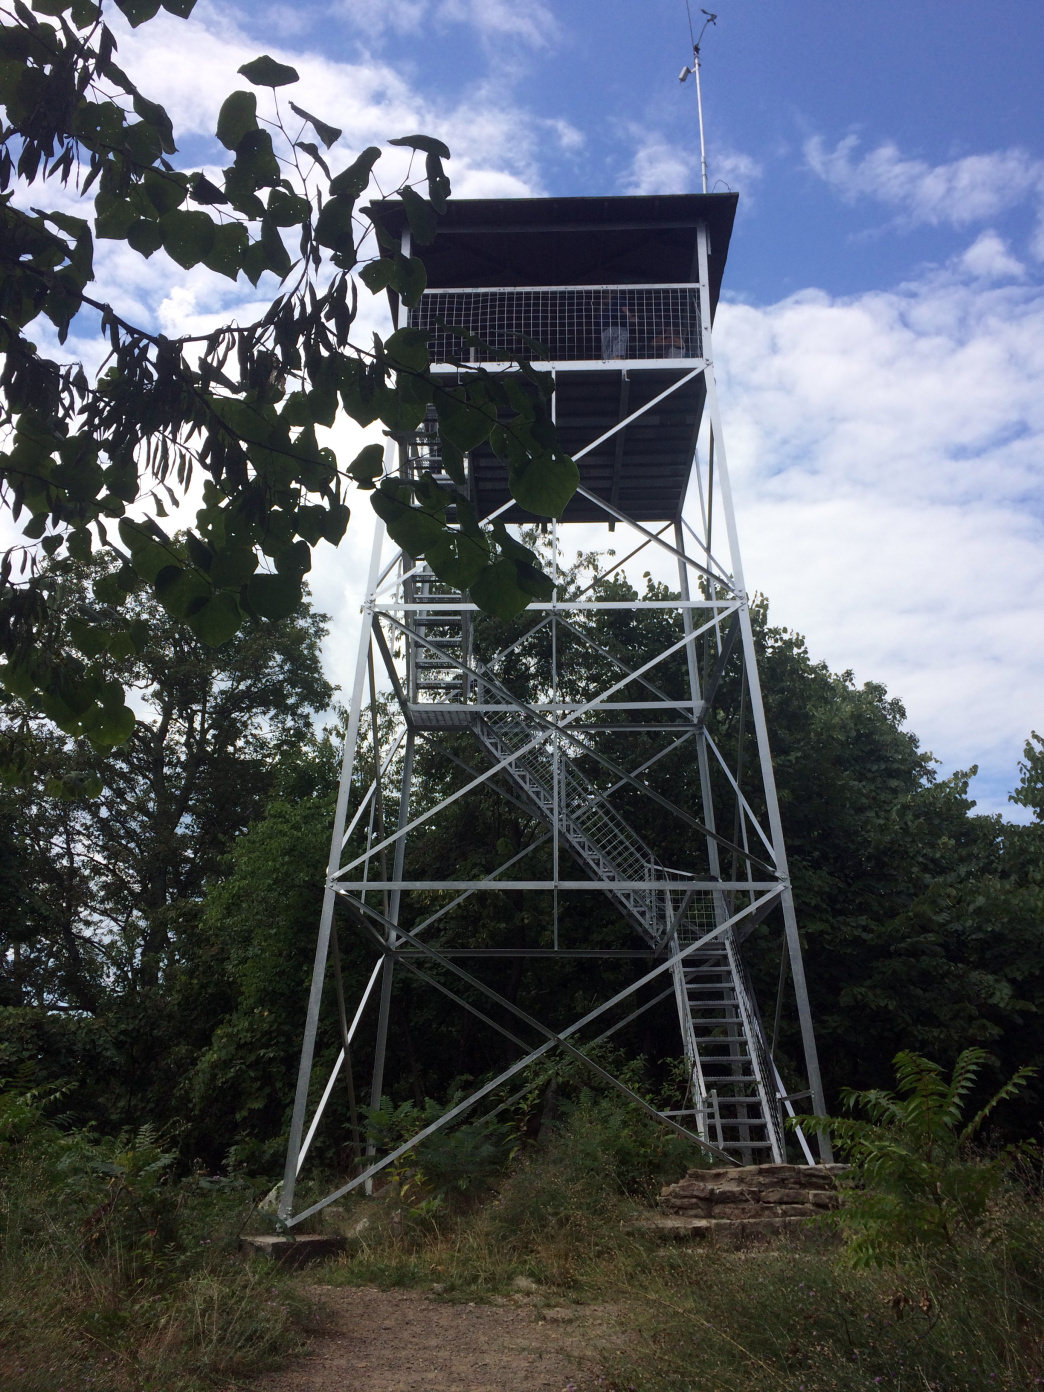 The Woodstock Tower offers some of the best views in the George Washington National Forest.